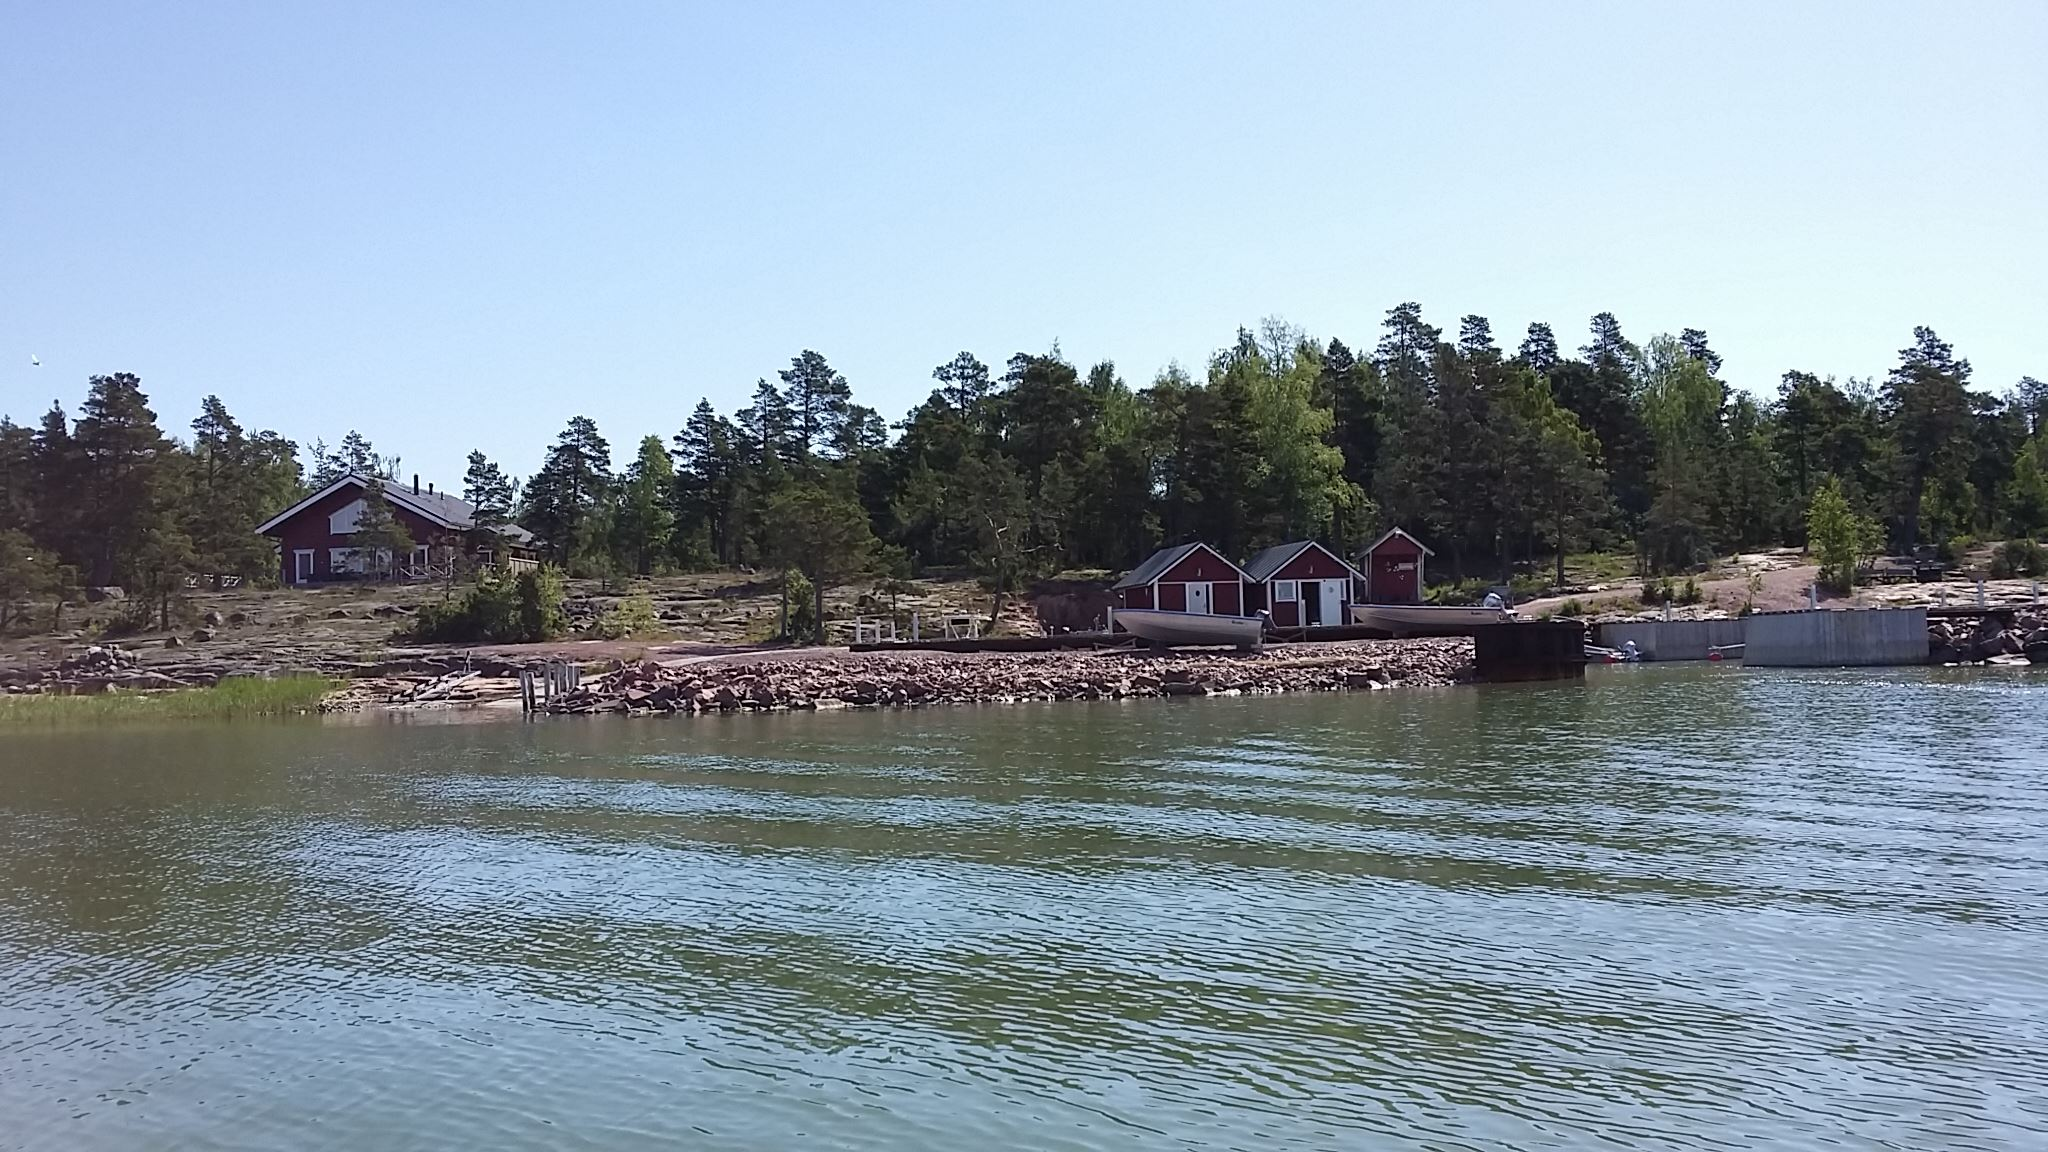 Norrö